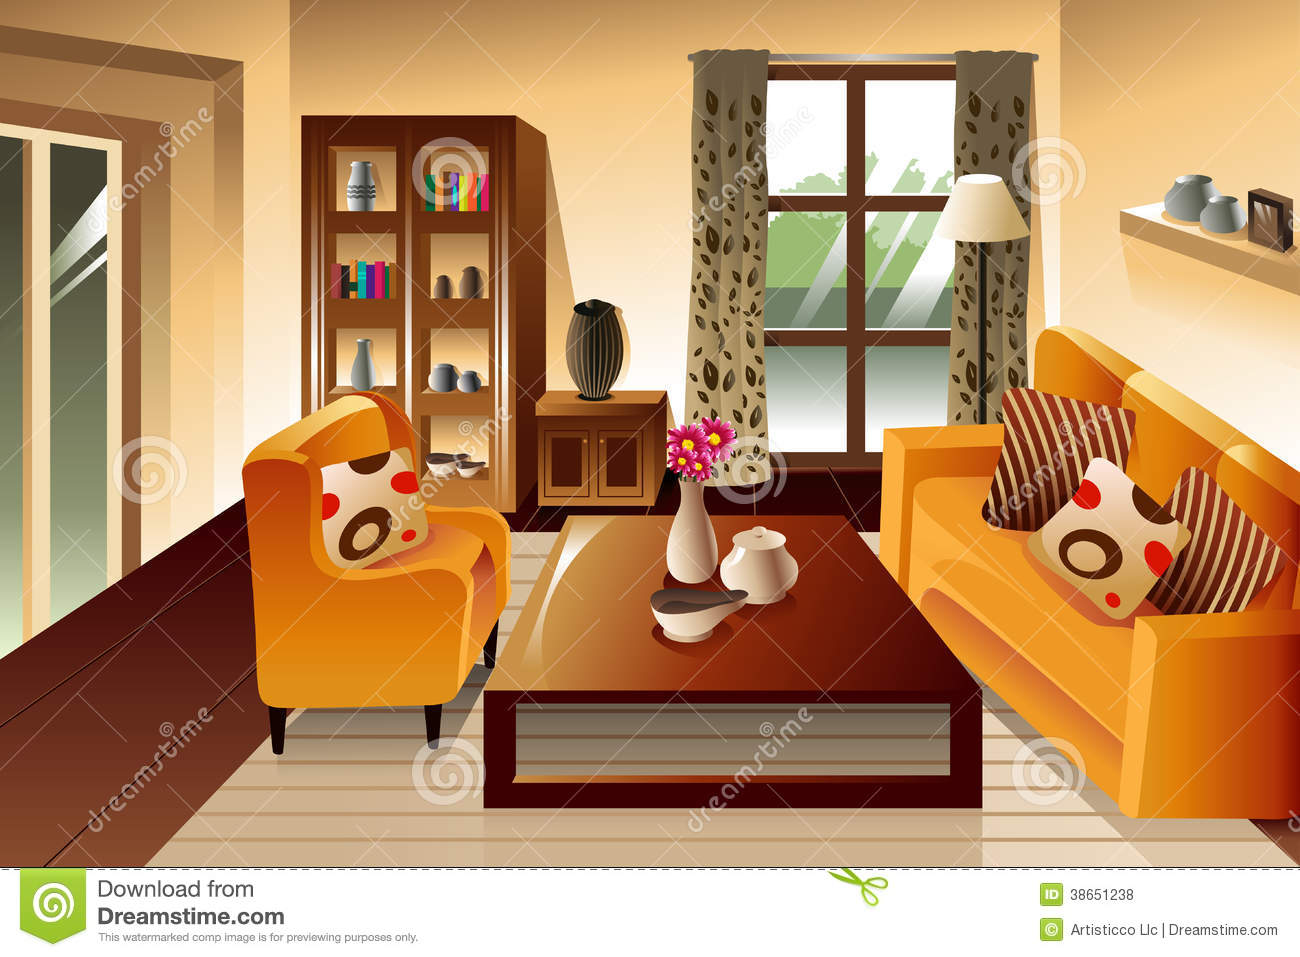 clipart living room - photo #7